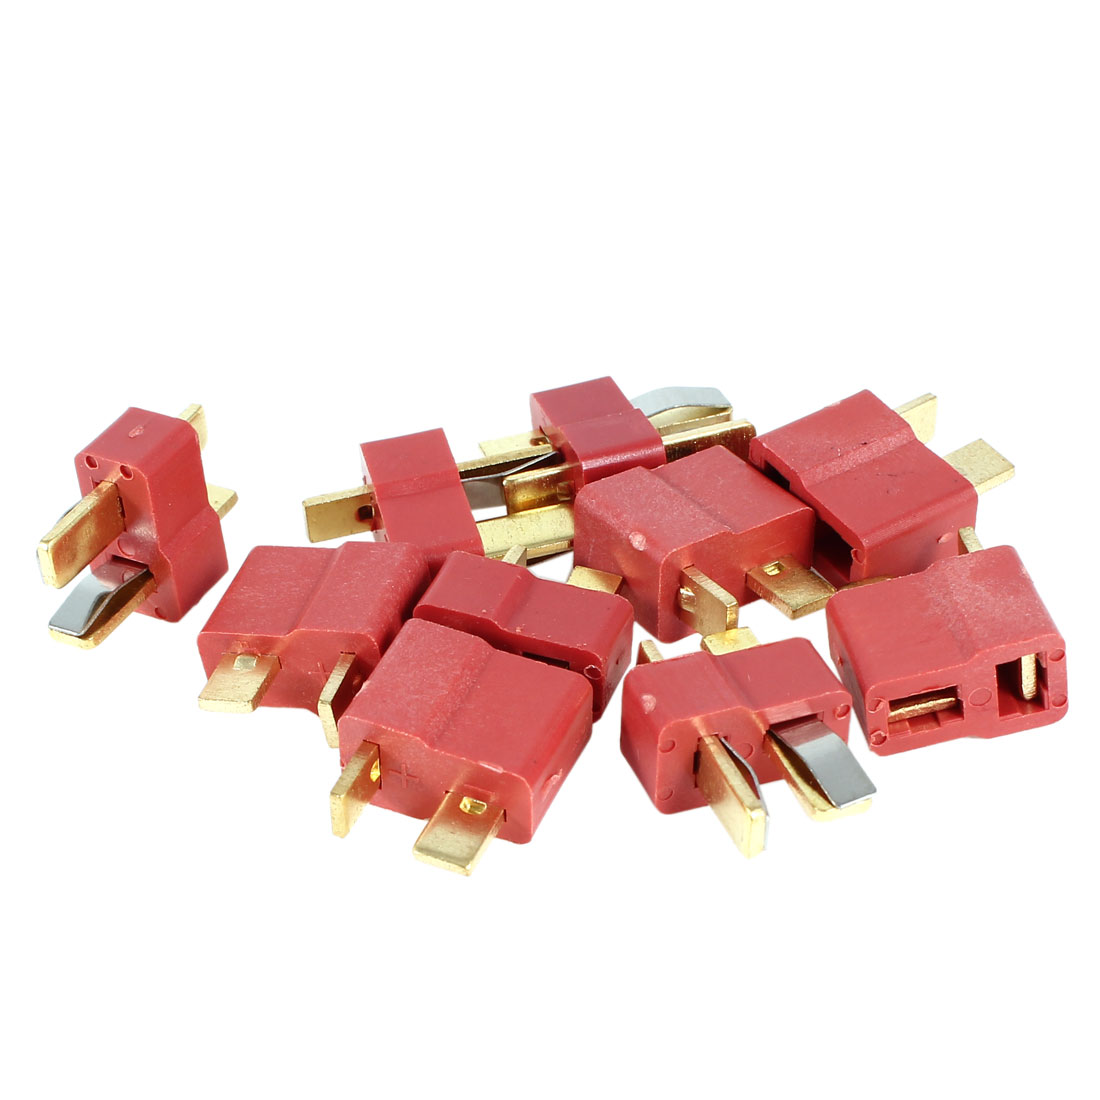 5 Pairs 2-Terminal Golden Plated T-Connect M/F Connector Adapter Red